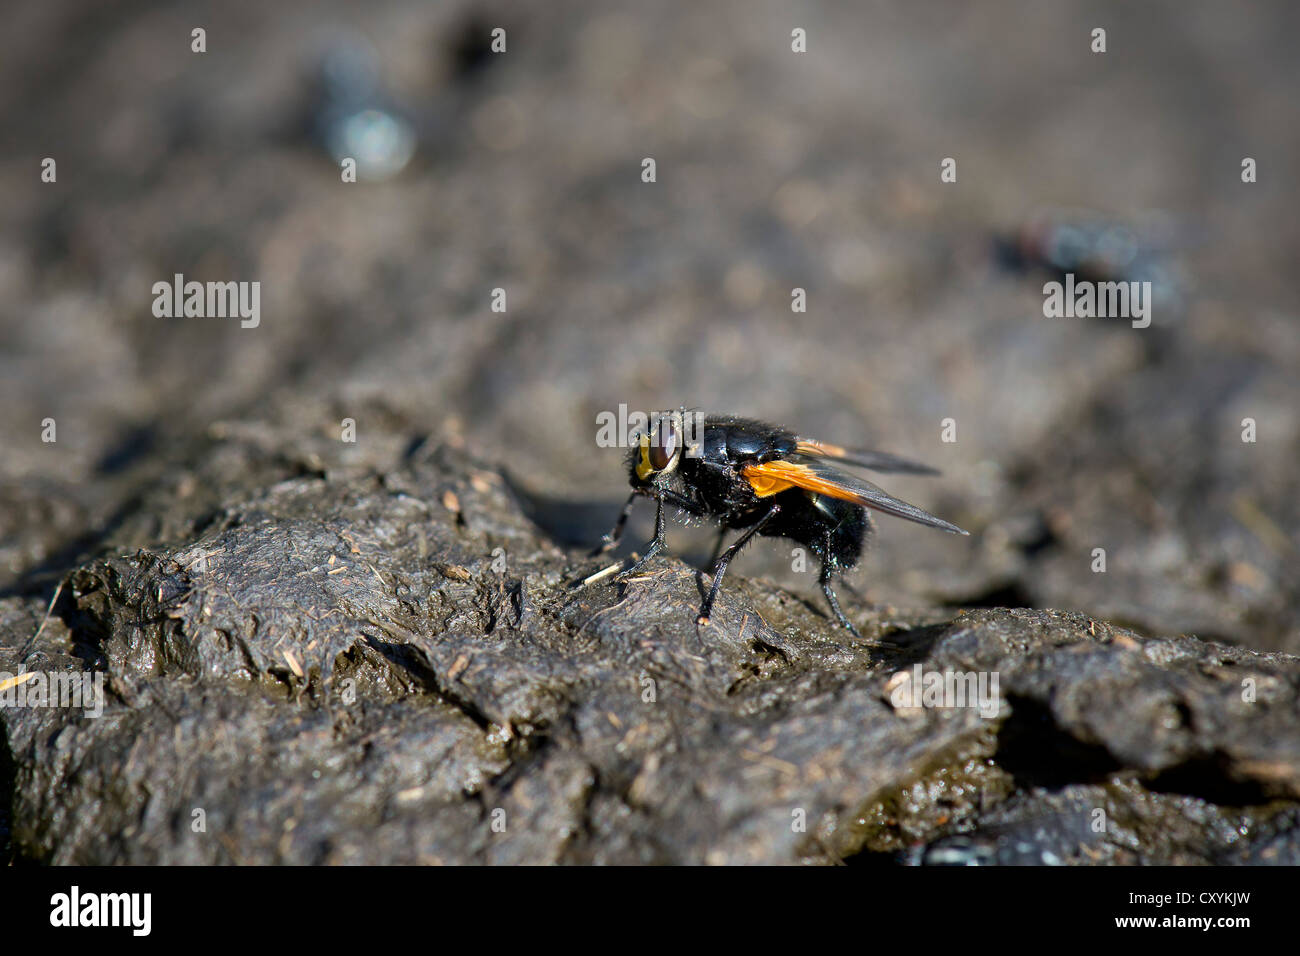 Noon fly (Mesembrina meridiana) perched on cow pat, Grawa Alm alp, Stubaital valley, Tyrol, Austria, Europe - Stock Image